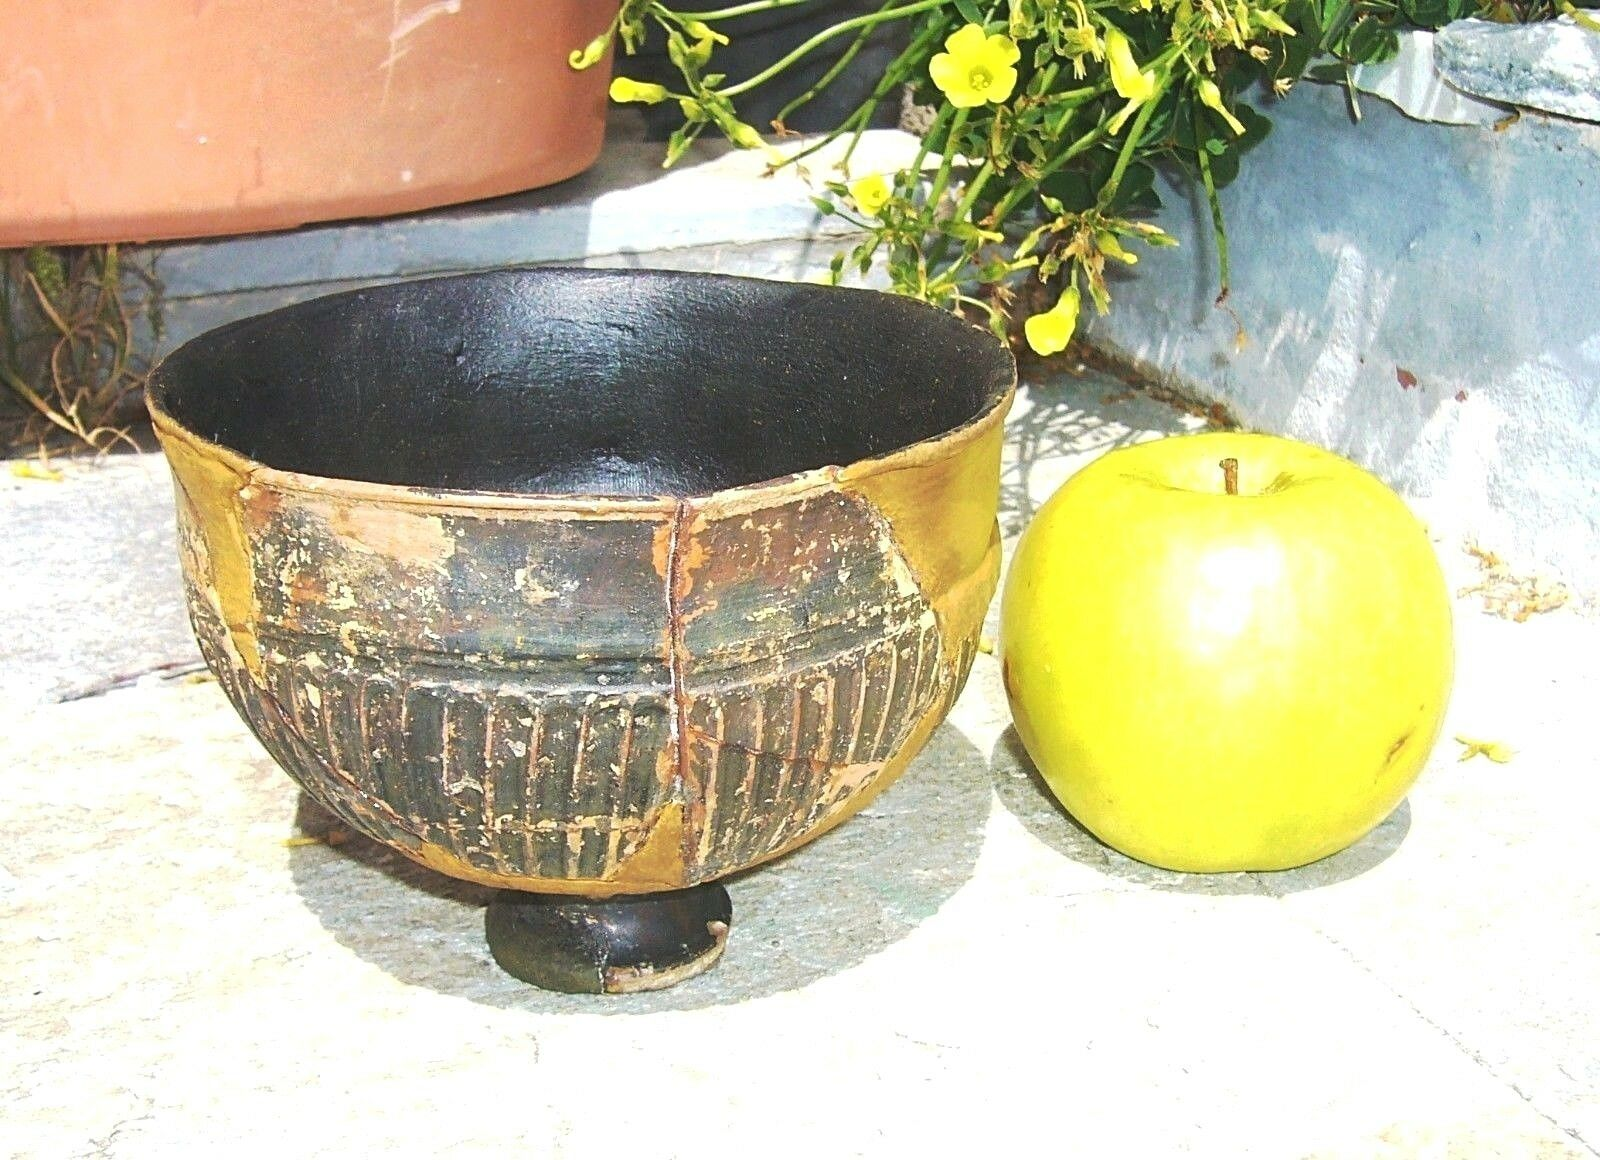 AUTHENTIC ANCIENT GREEK ATTIC POTTERY TERRACOTTA FOOTED BOWL ca.5th CENTURY BC